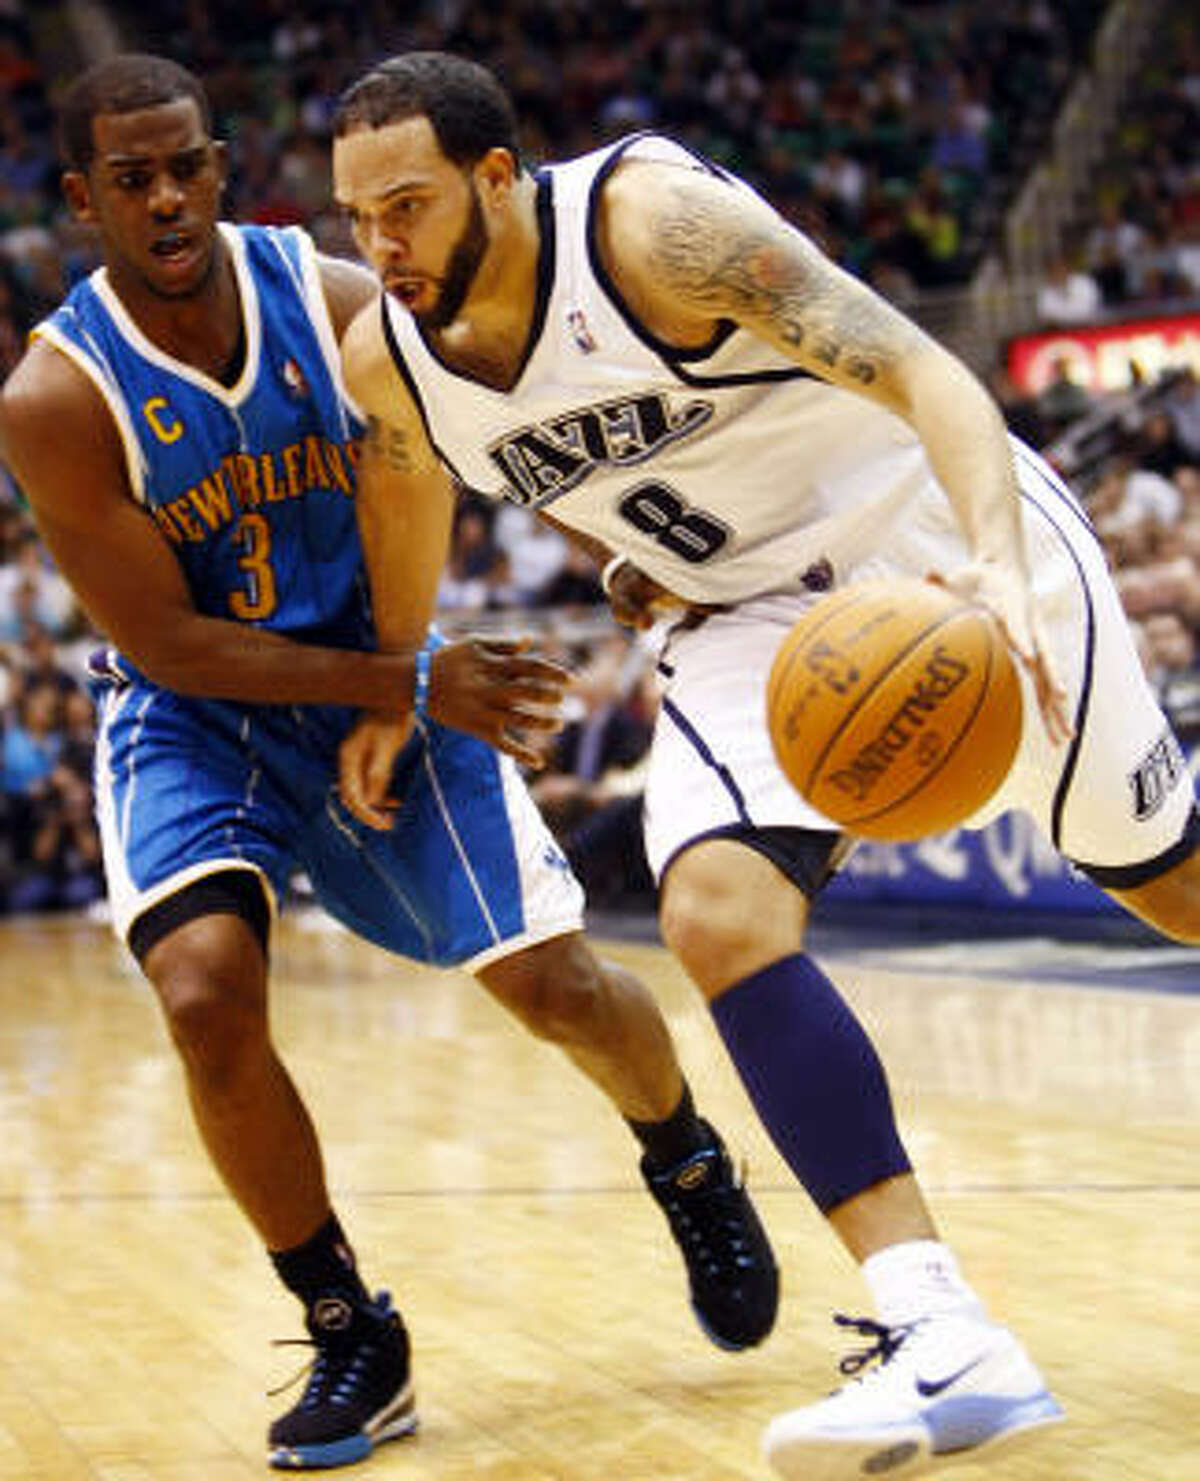 Utah Jazz guard Deron Williams (8) is averaging 19 points and 9.5 assists per game.